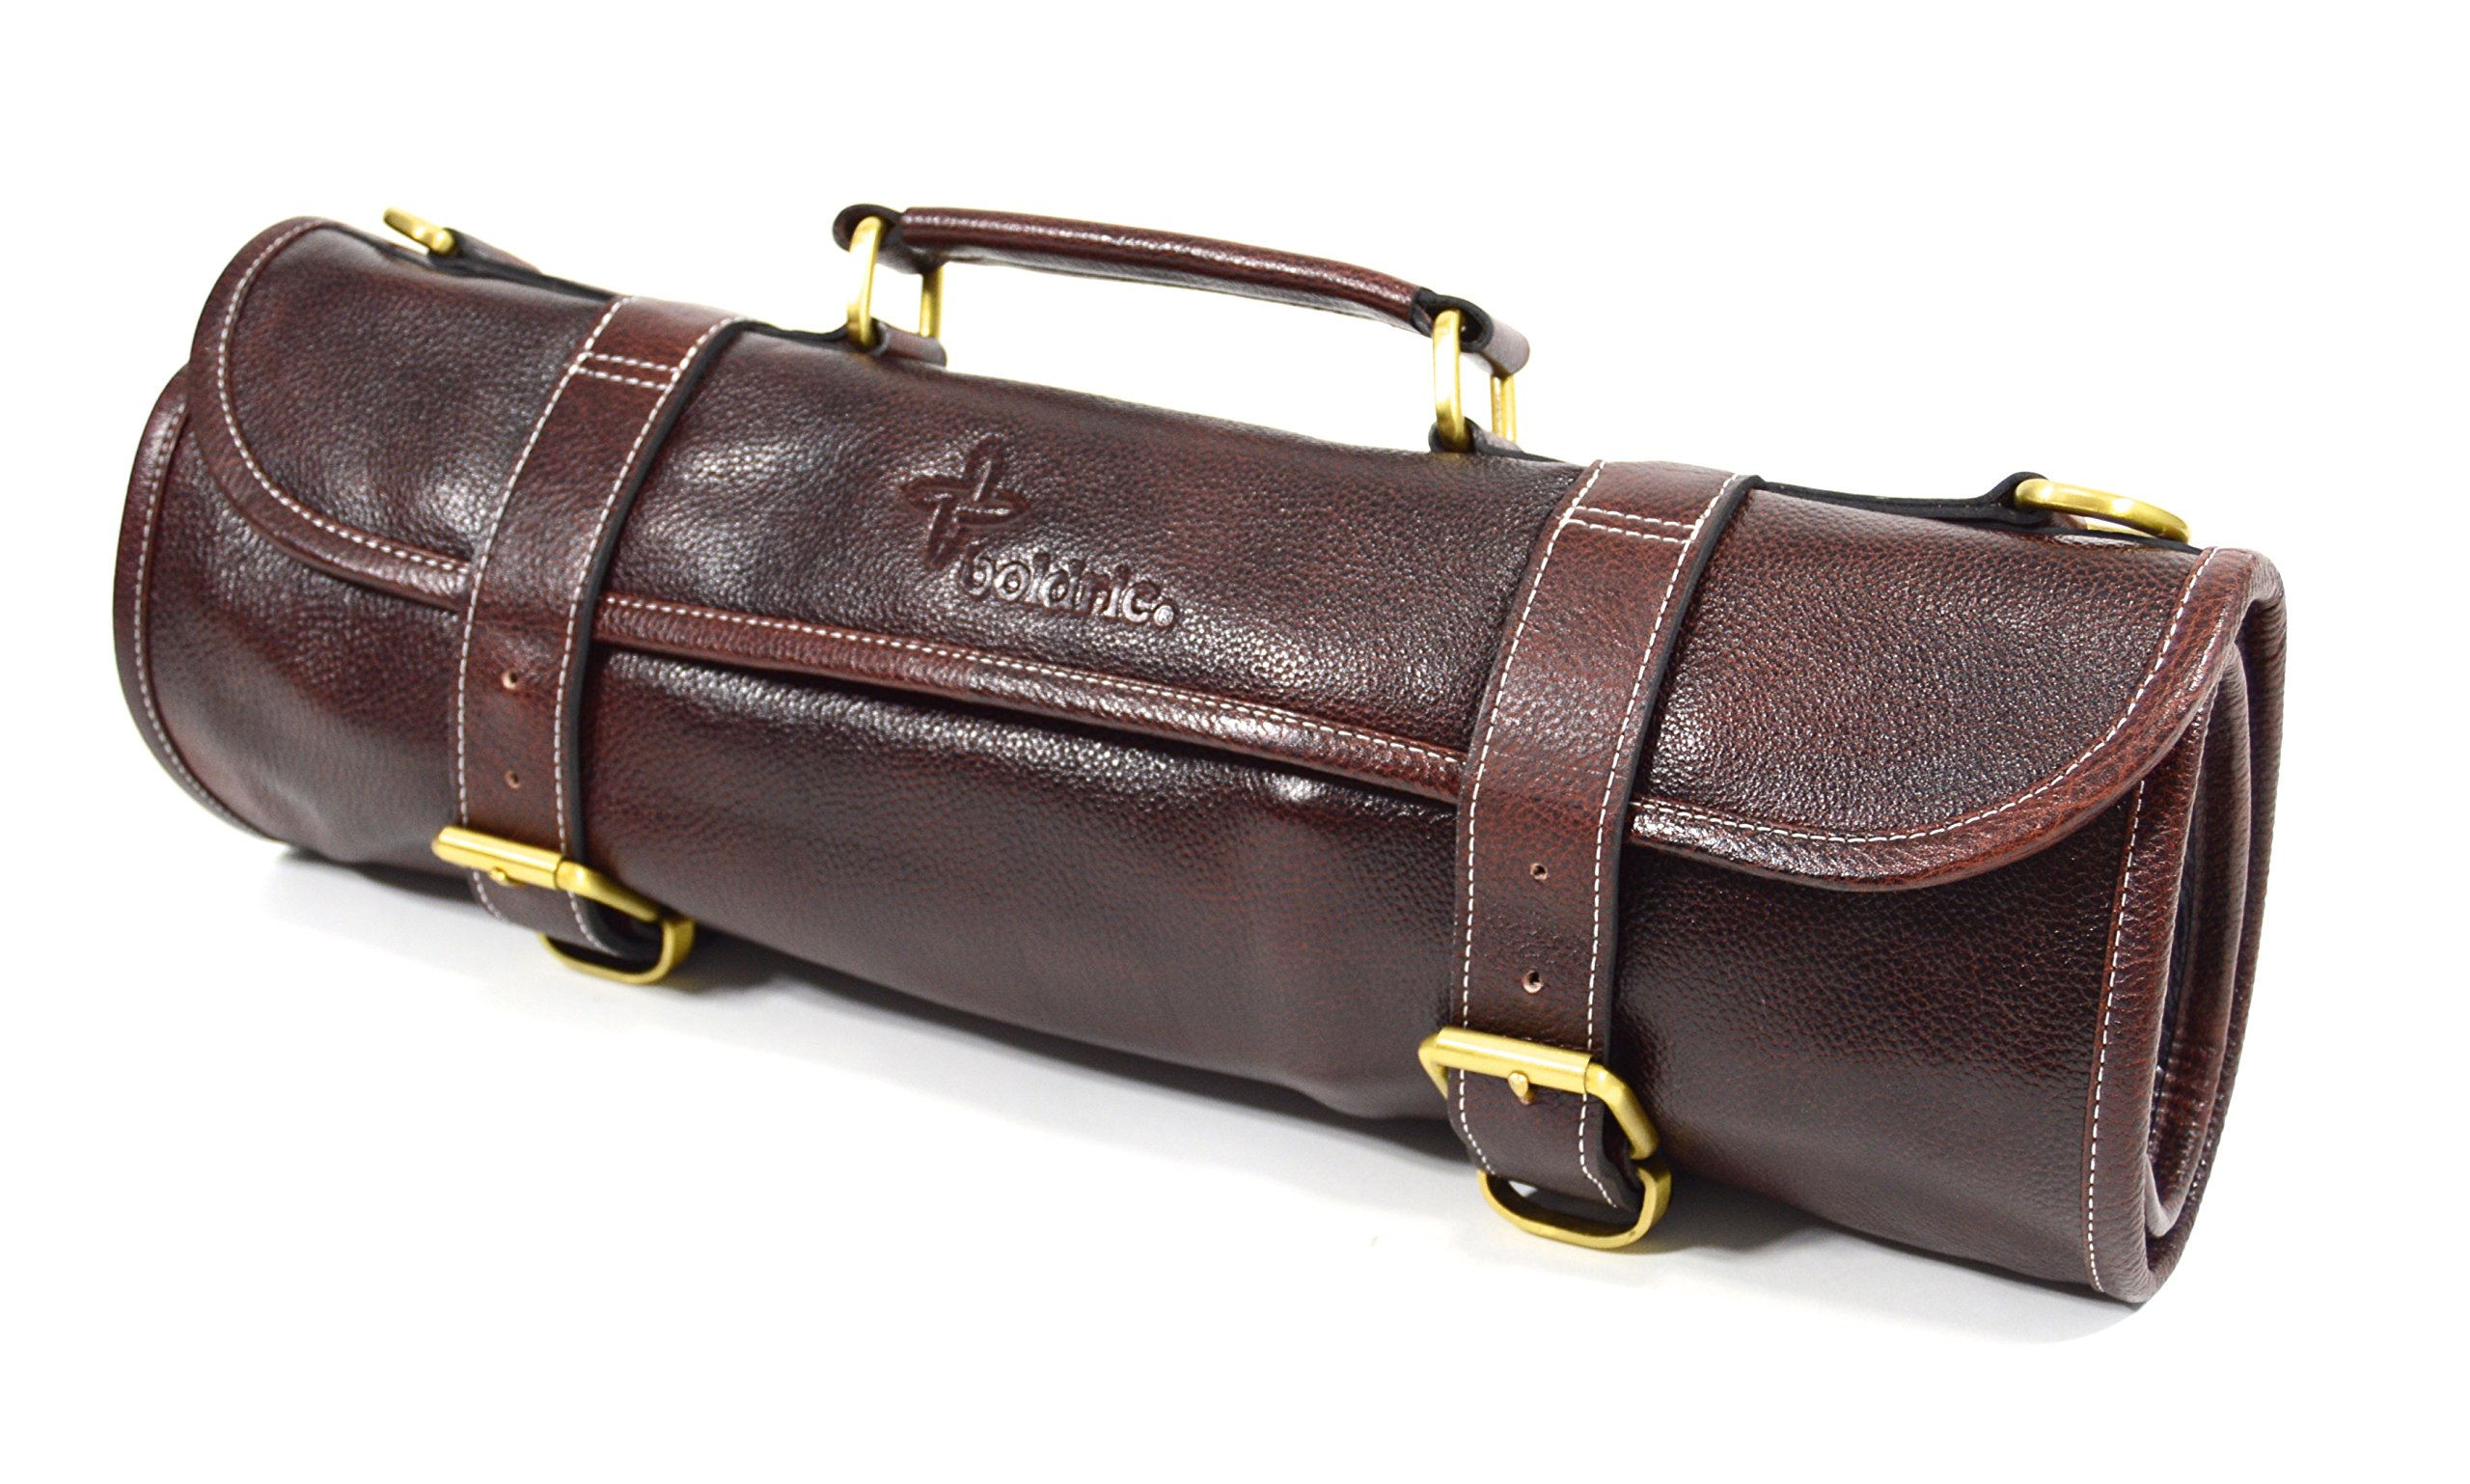 Boldric 9 Pocket Leather Chef Knife Roll Bag With Shoulder Strap – Professional Water Buffalo Hide Travel Carrier Case With Tool Organizer Slots For Knives Pens Pencils Spoons (Brown)